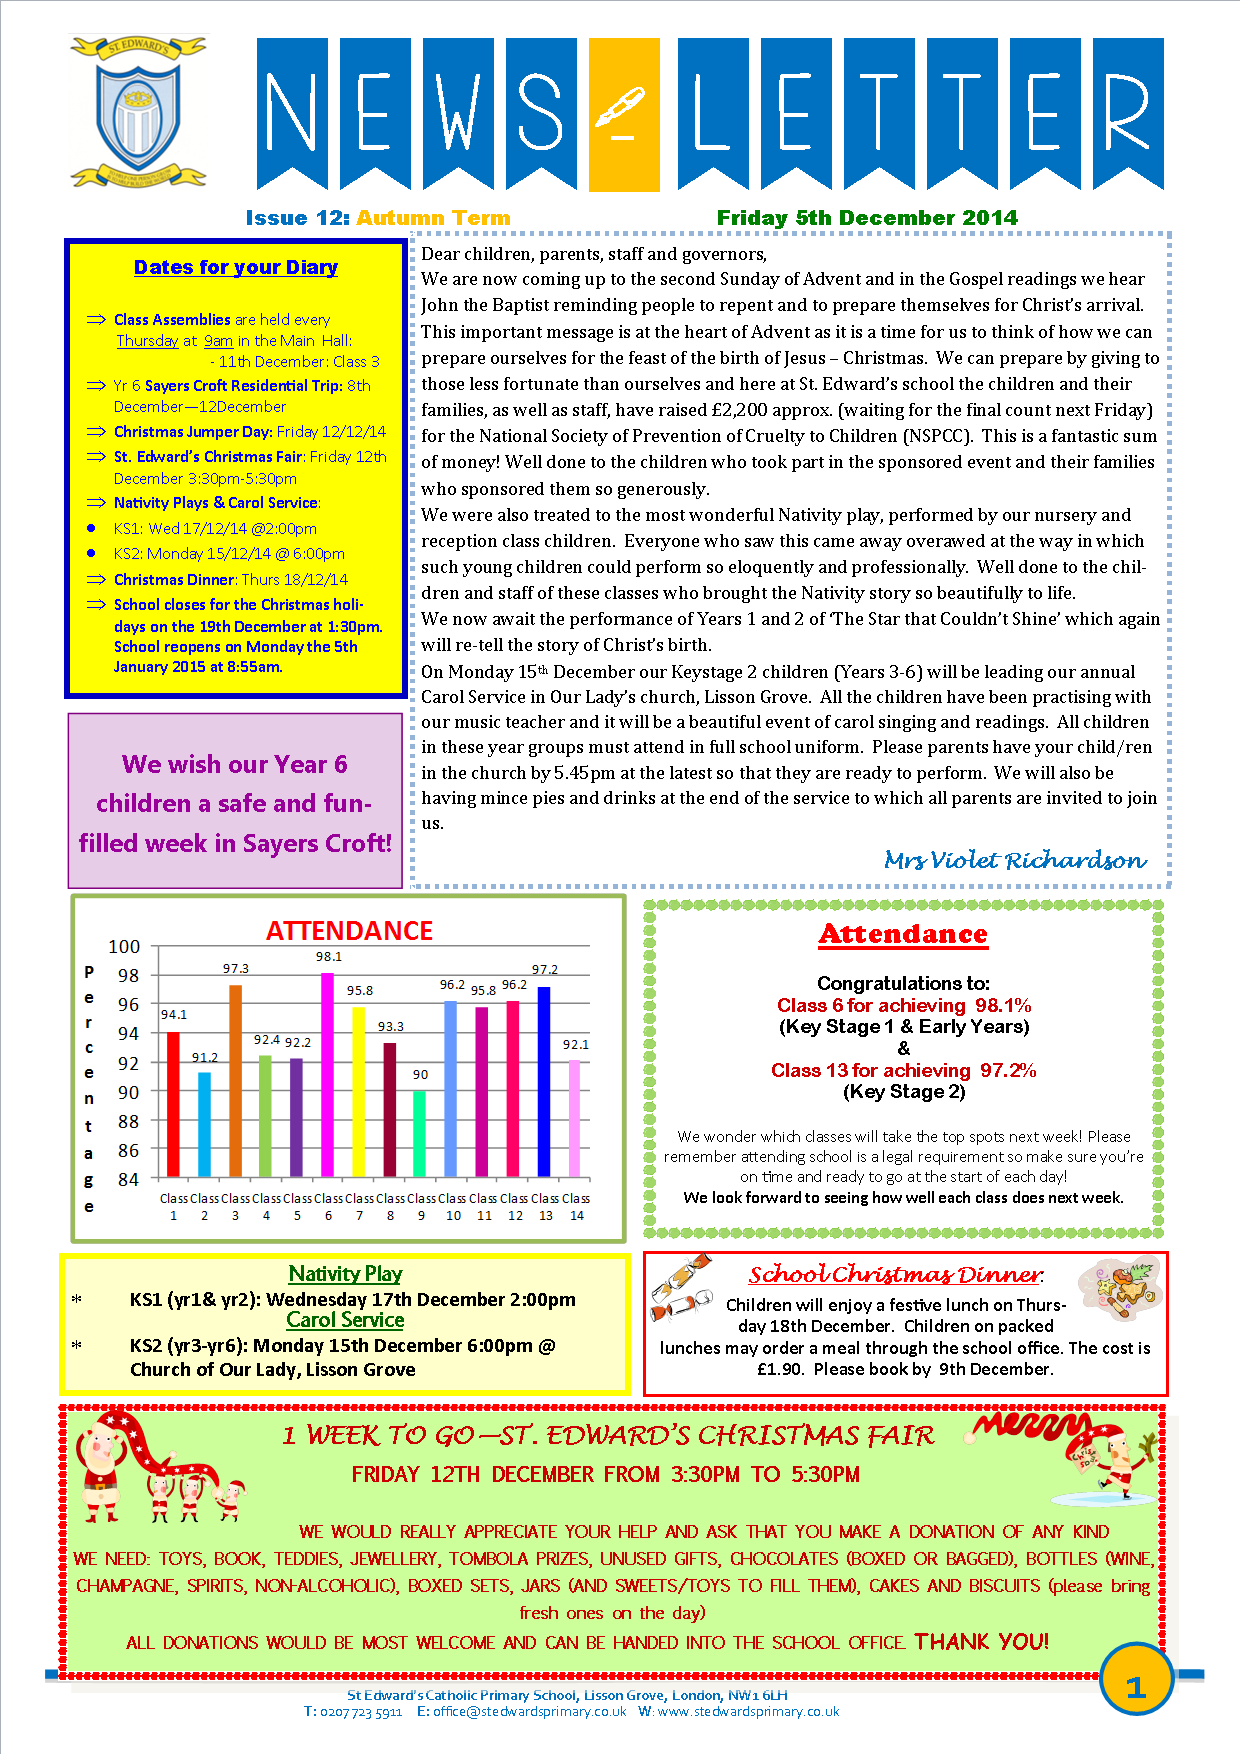 1St Edward's Newsletter Issue 12 5th December 2014.png